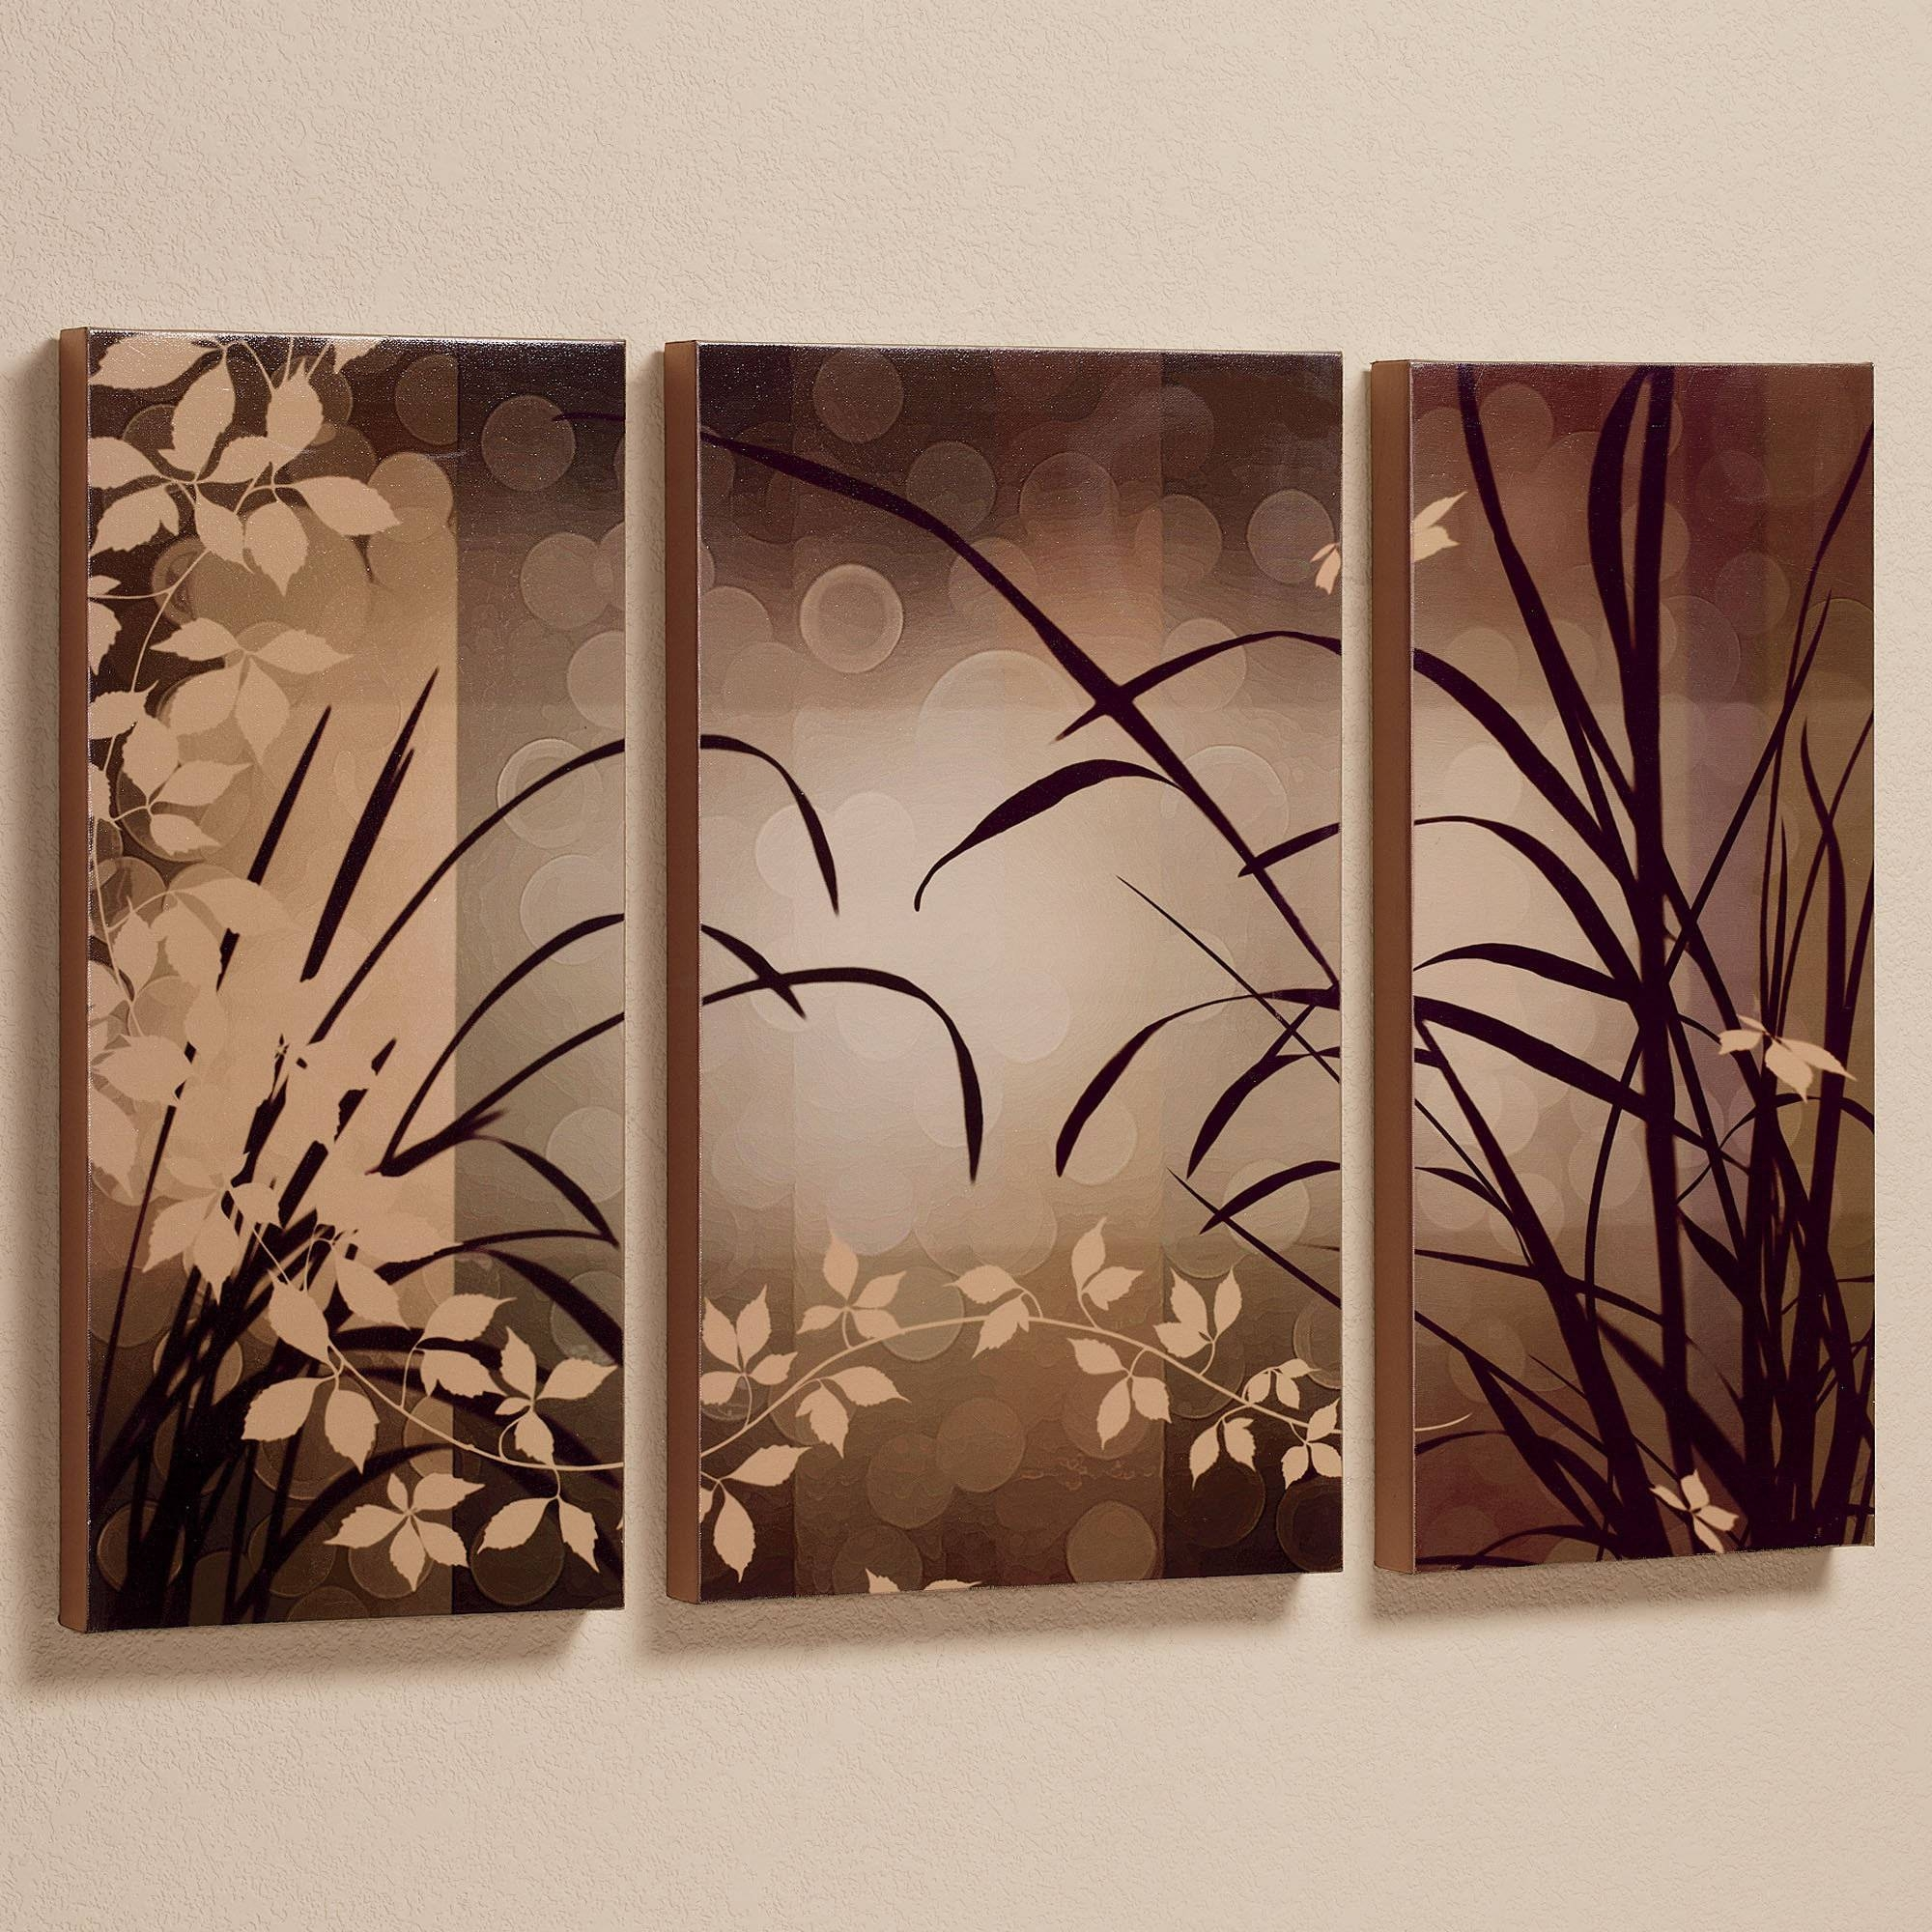 Captivating 70+ 3 Piece Canvas Wall Art Sets Design Decoration Of Inside Most Popular Canvas Wall Art Sets Of (View 2 of 25)